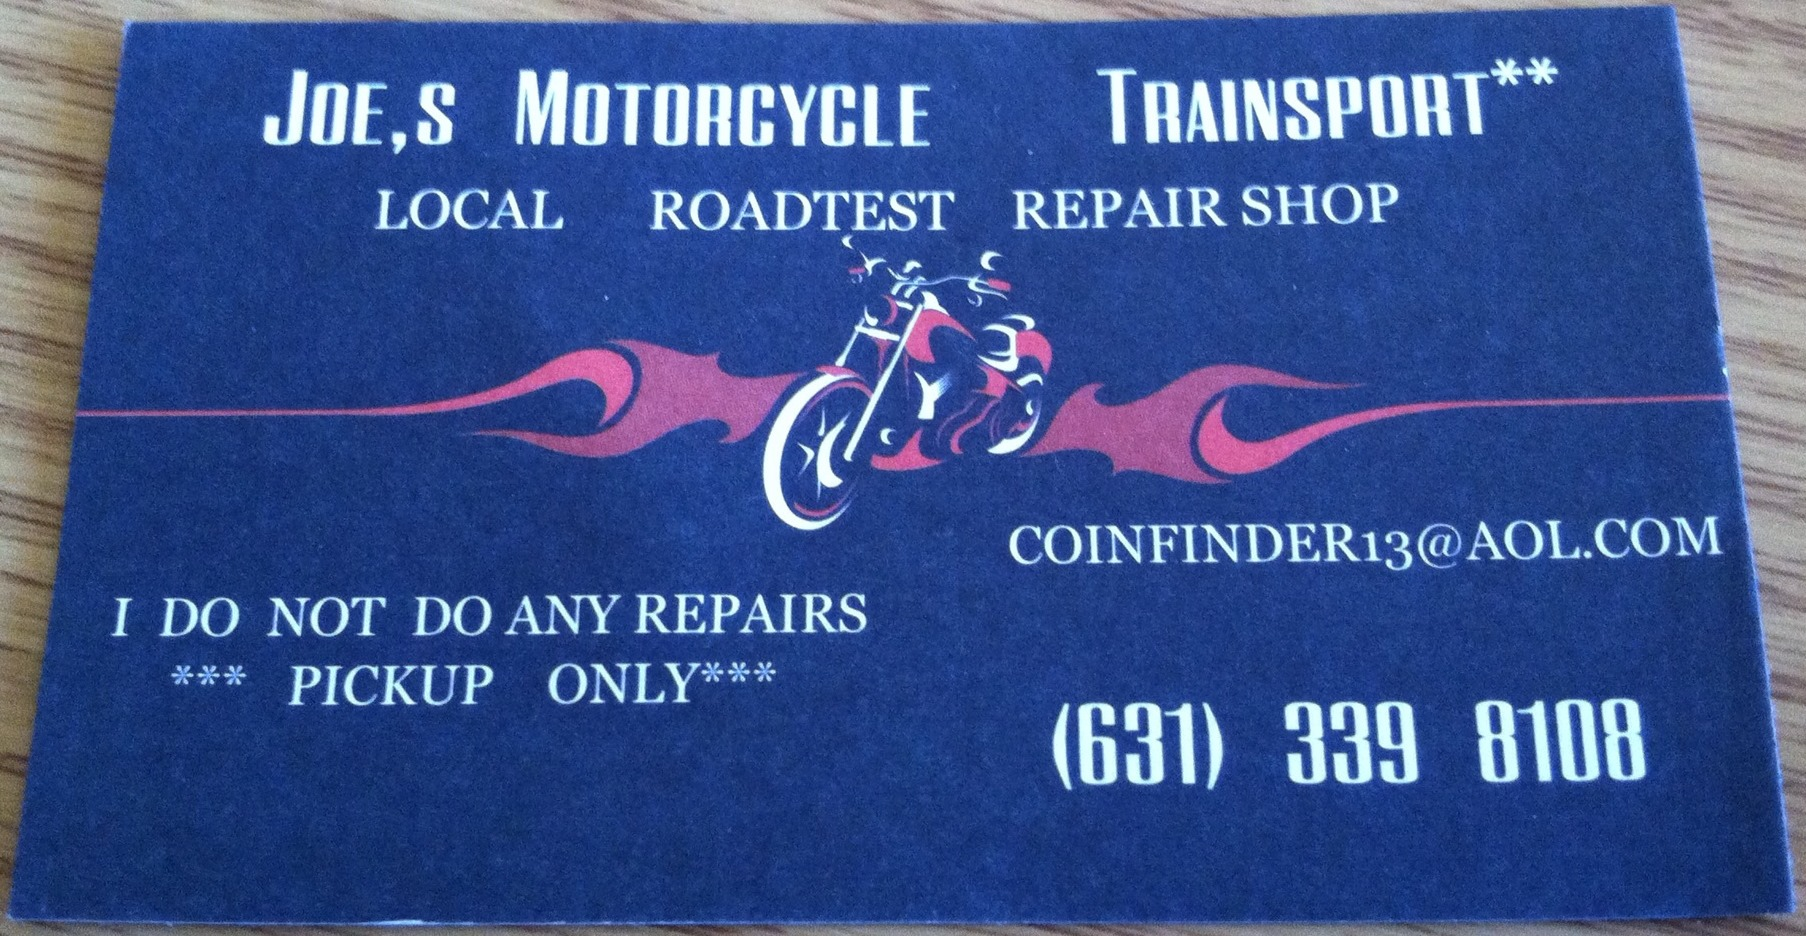 Joes Motorcycle Transport Business Card Errors